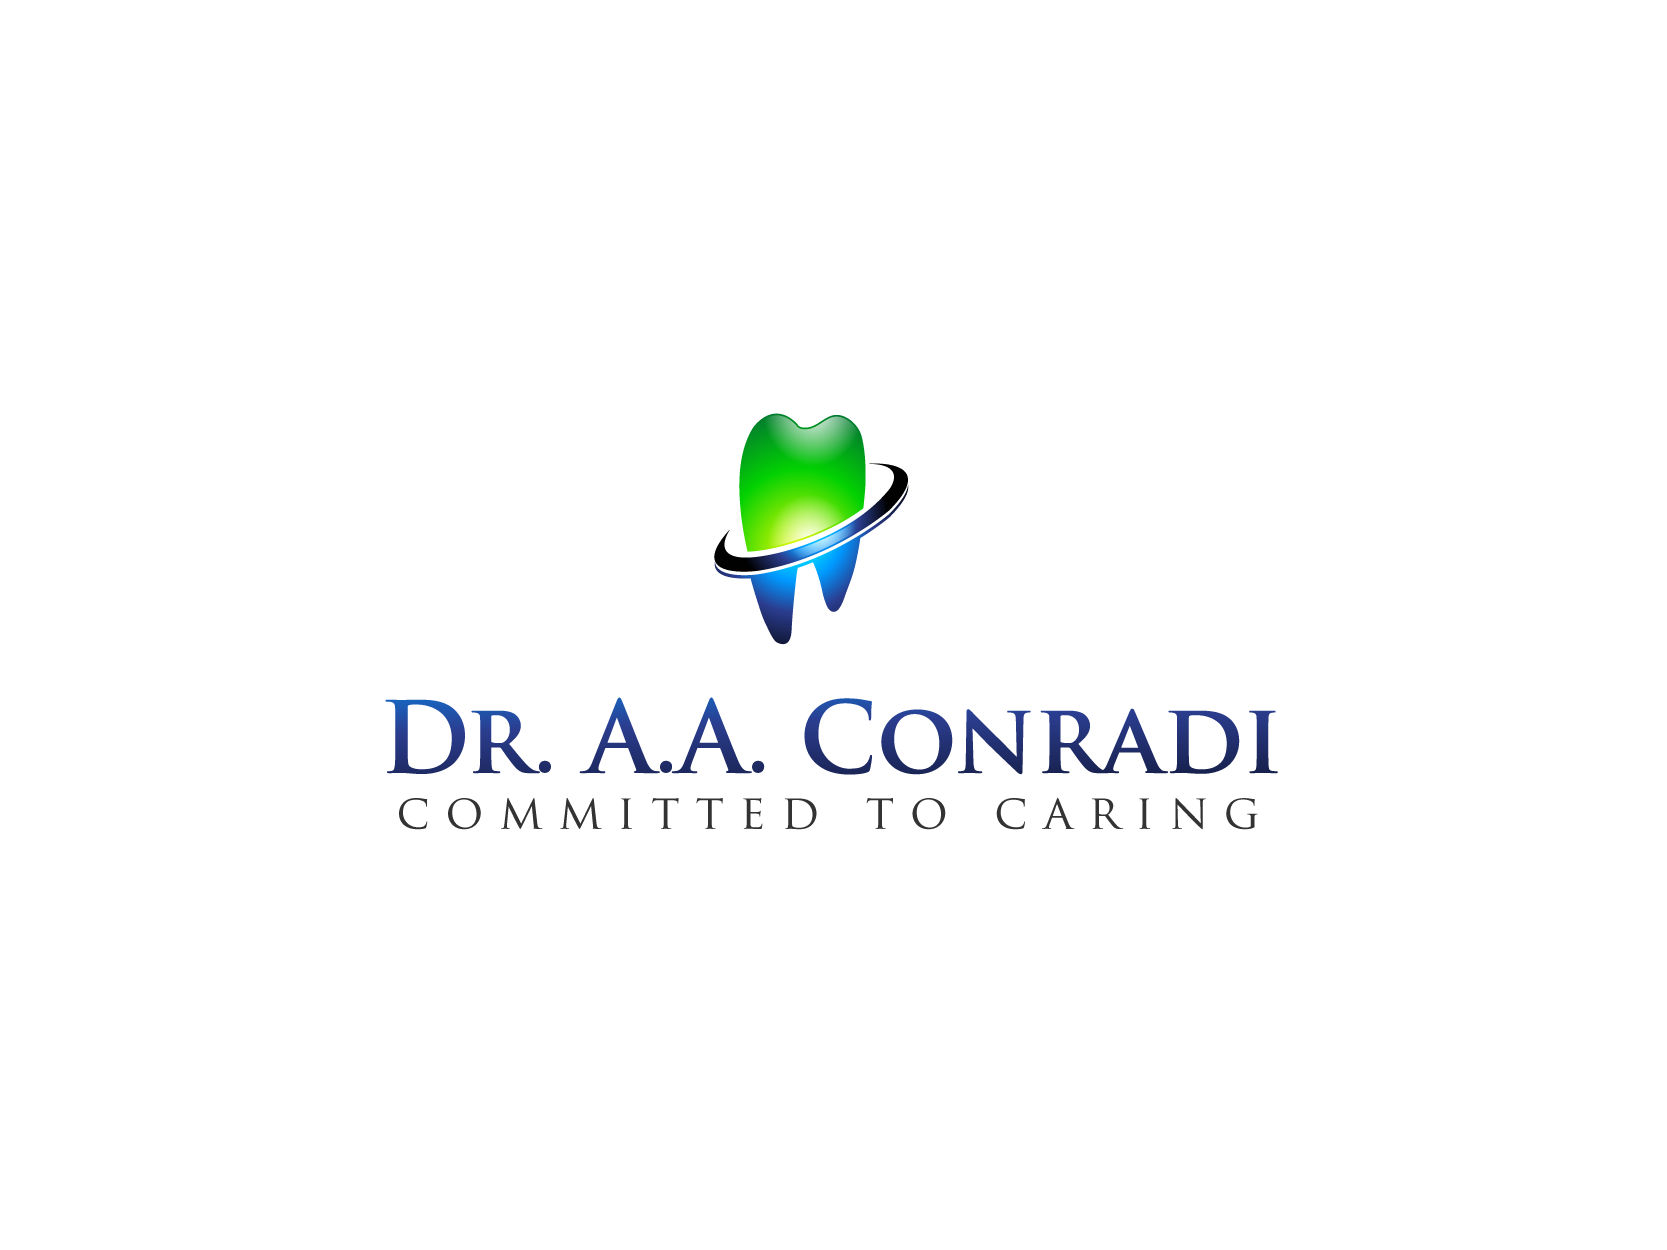 Logo Design by G.DRACHIT - Entry No. 167 in the Logo Design Contest Unique Logo Design Wanted for Dr. A.A. Conradi.